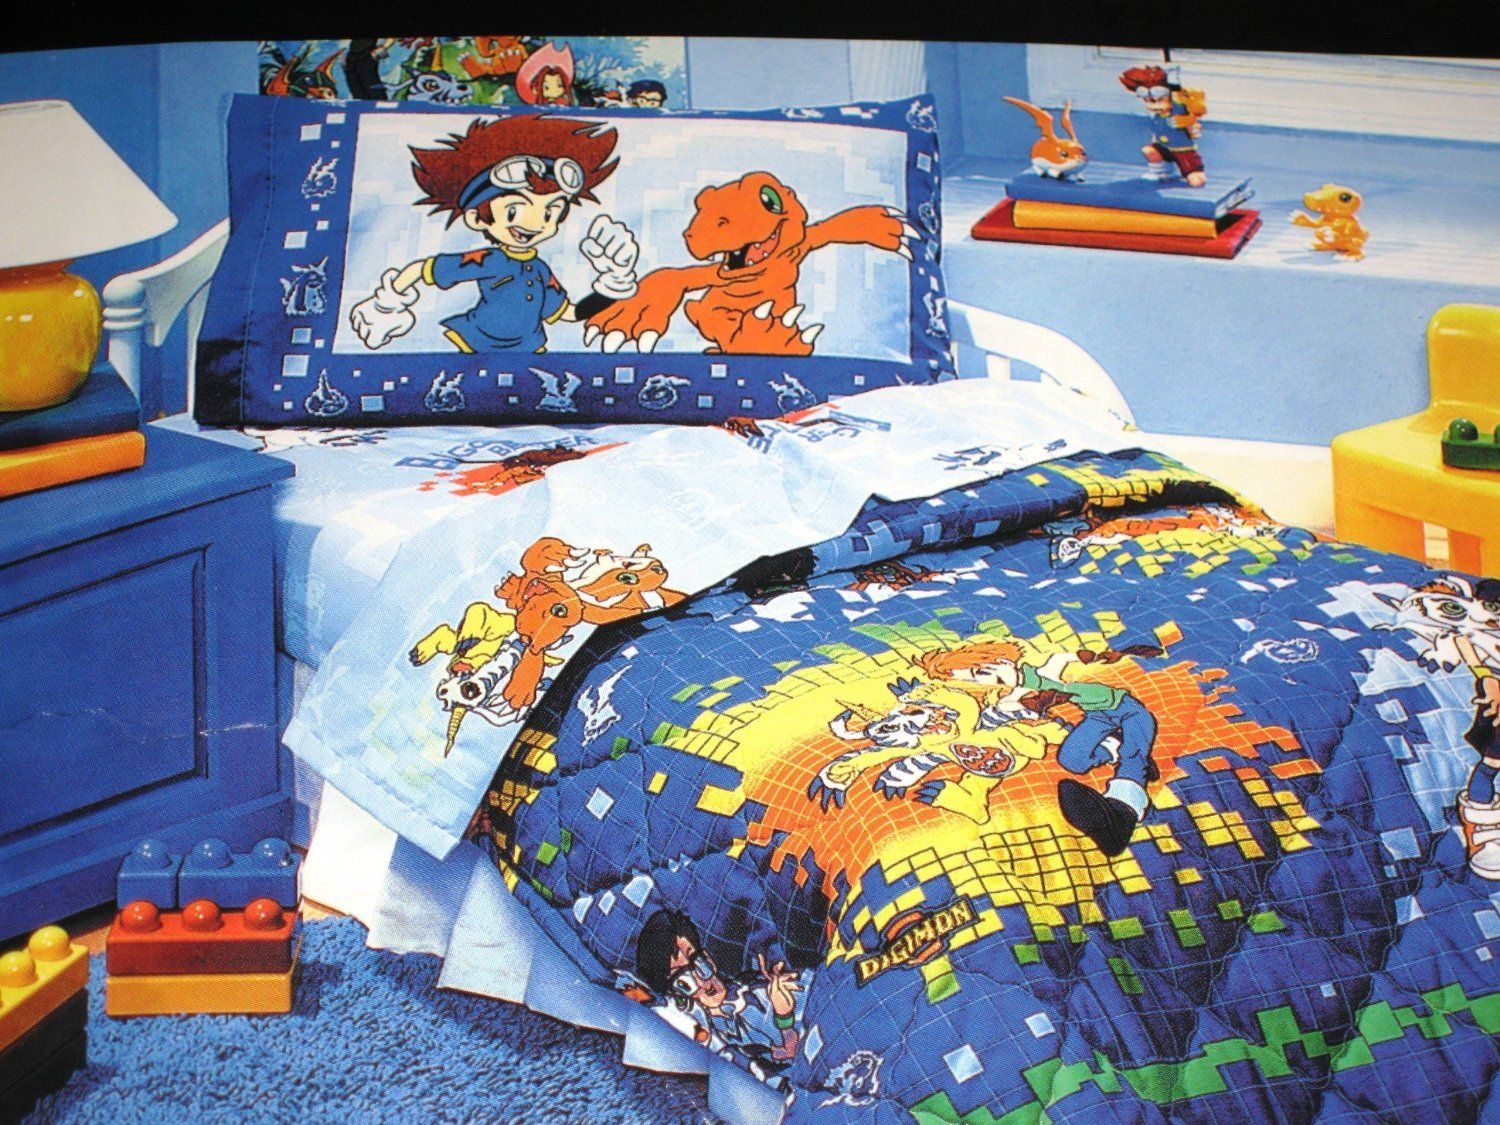 Digimon Bedding And Bedroom Decor I Had This When I Was Younger I